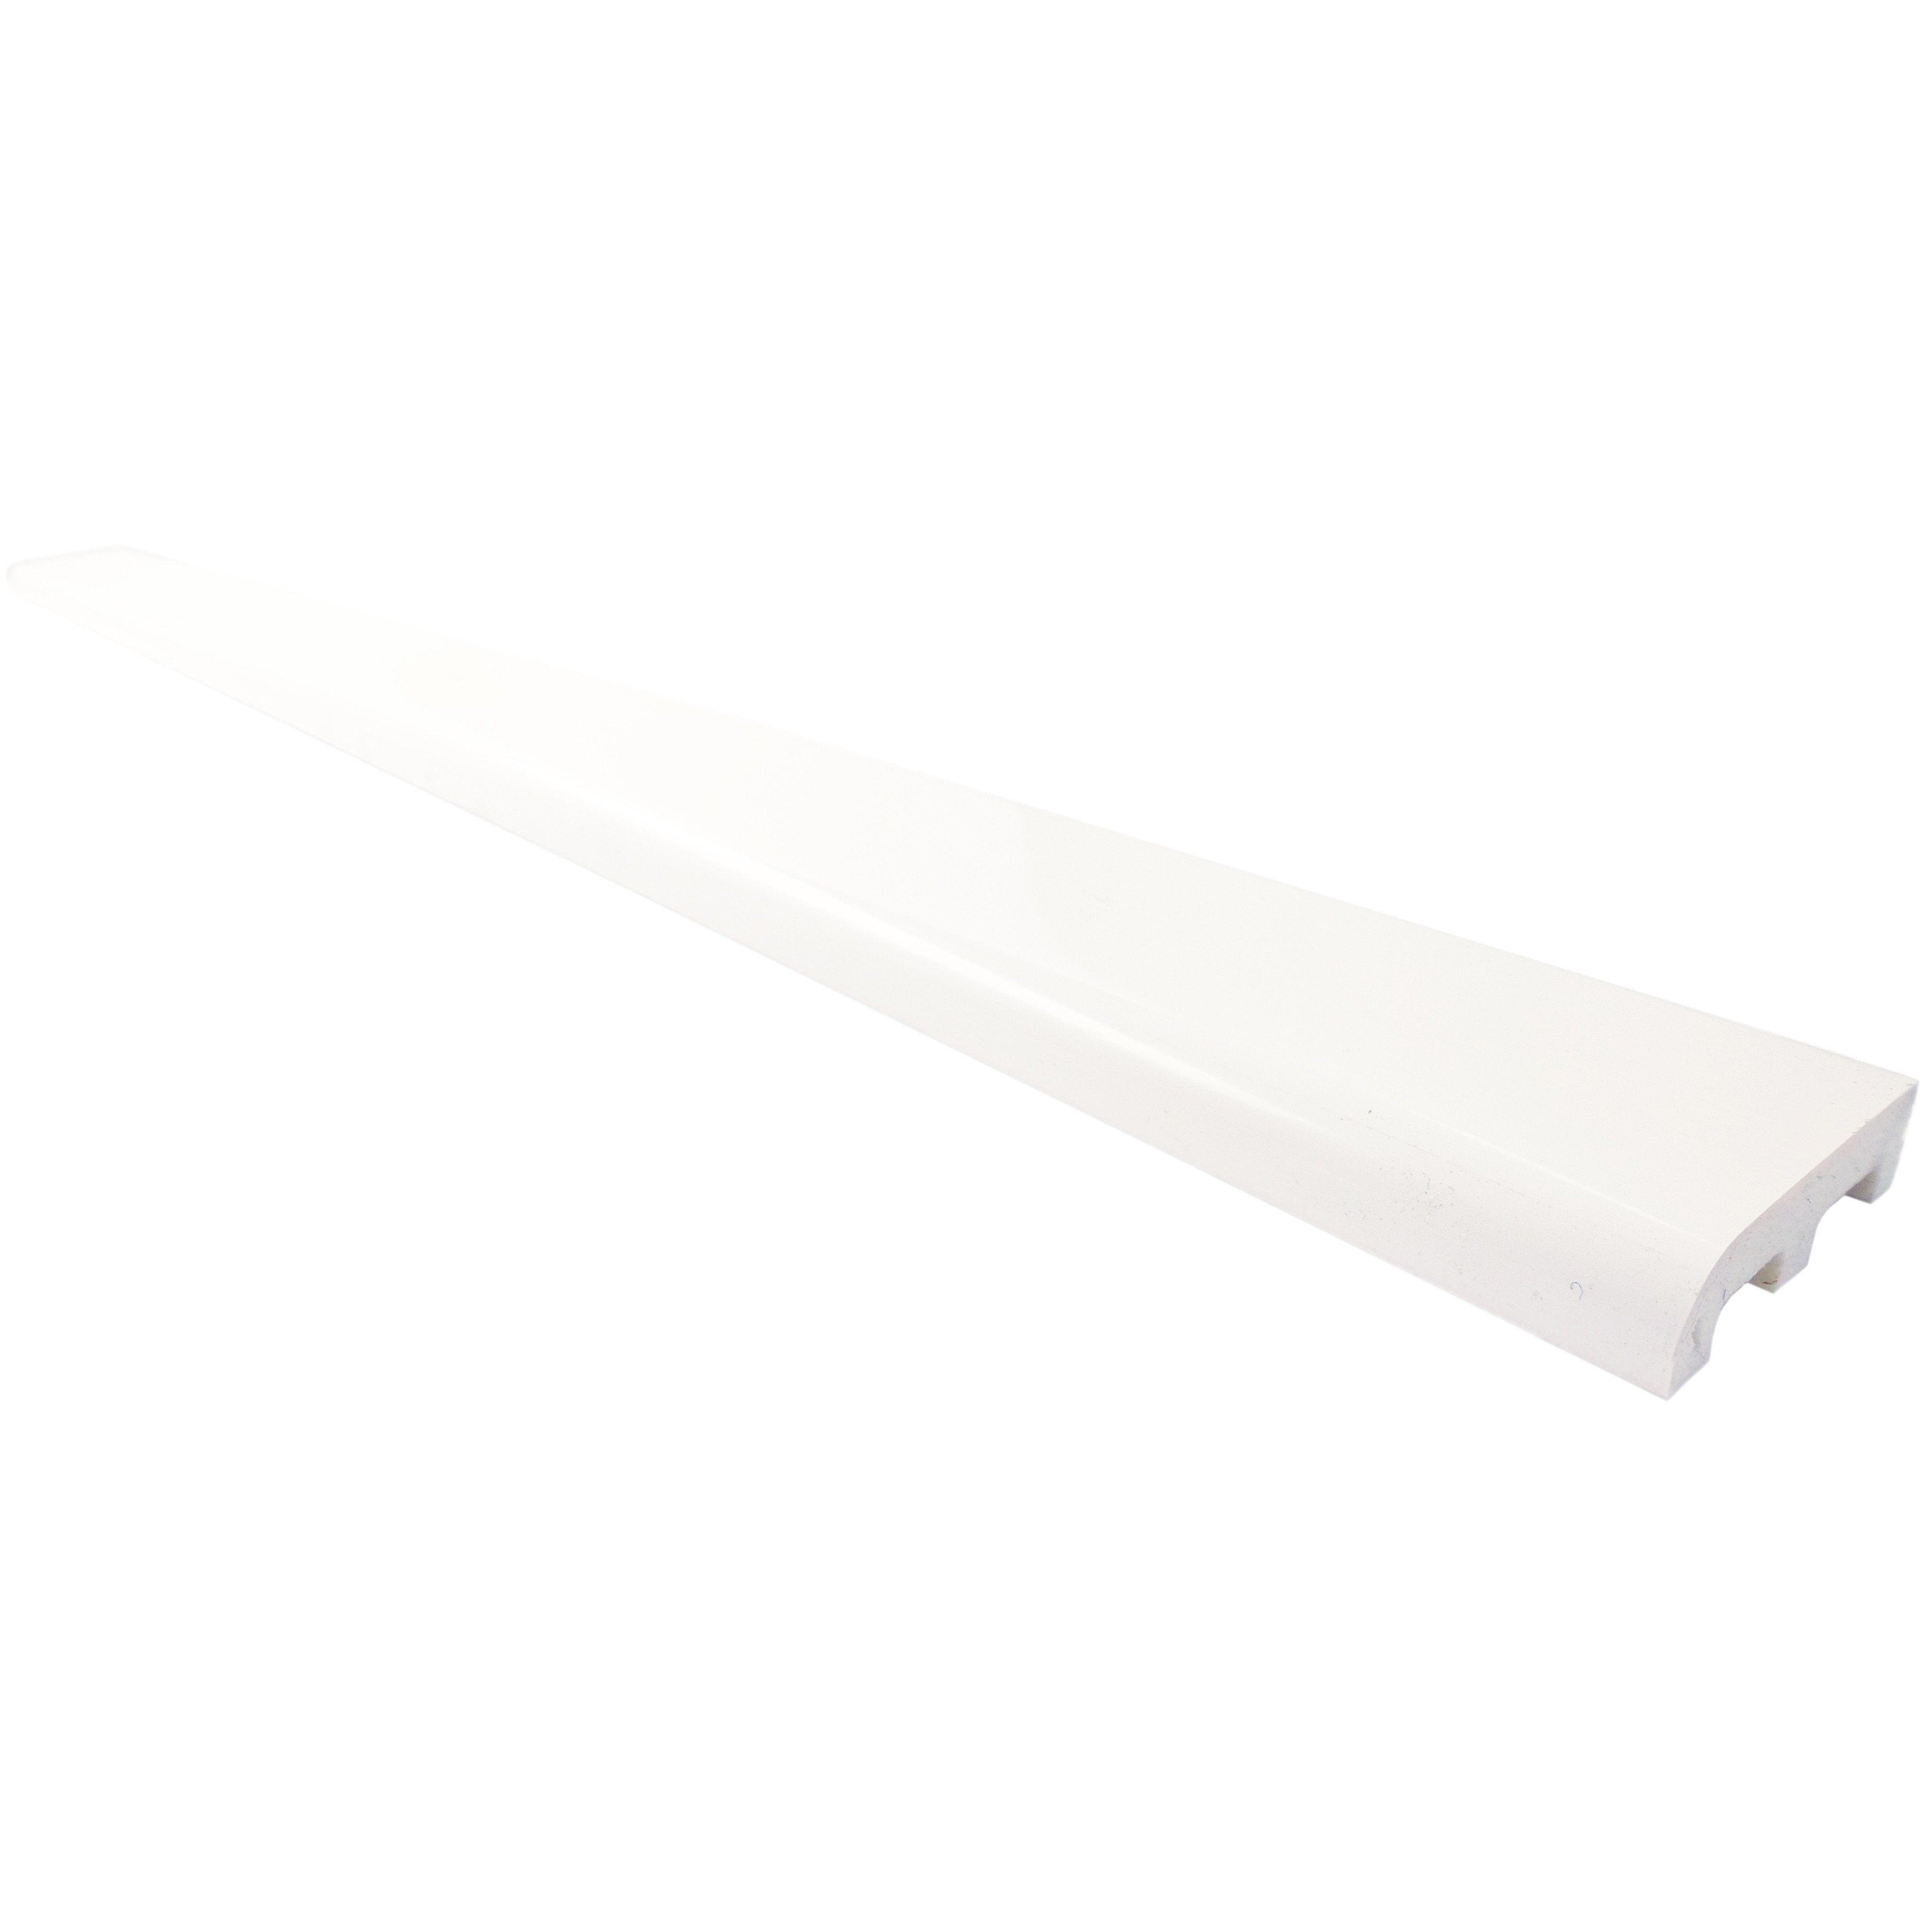 Freefoam 12mm Plastic Architrave - White, 45mm, 2.5 metre